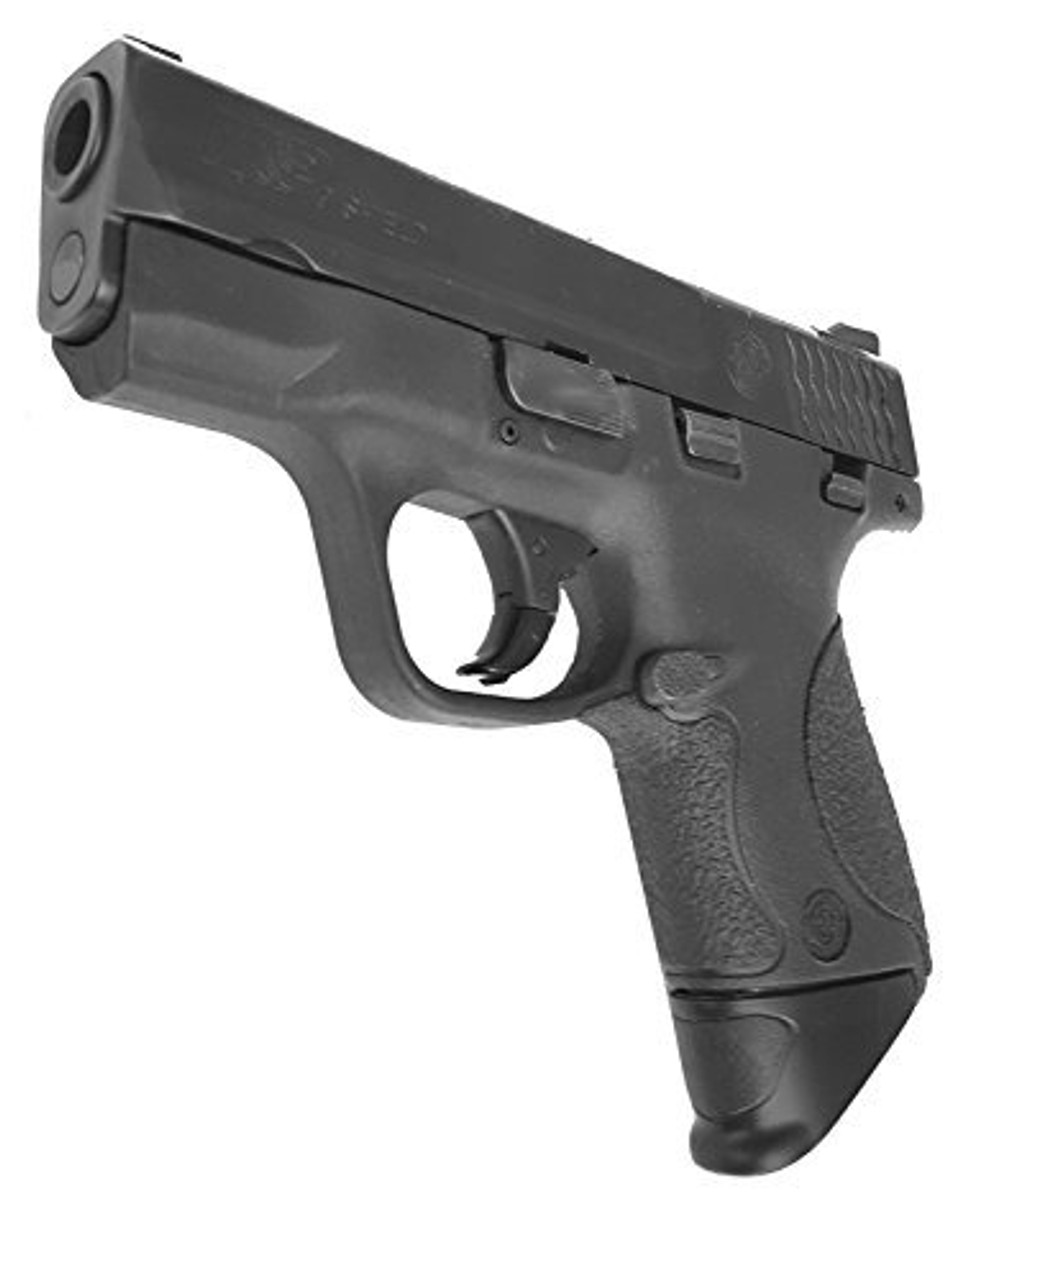 Garrison Grip 1 Inch Grip Extension Fits Smith & Wesson M&P Shield 9mm & 40 Caliber